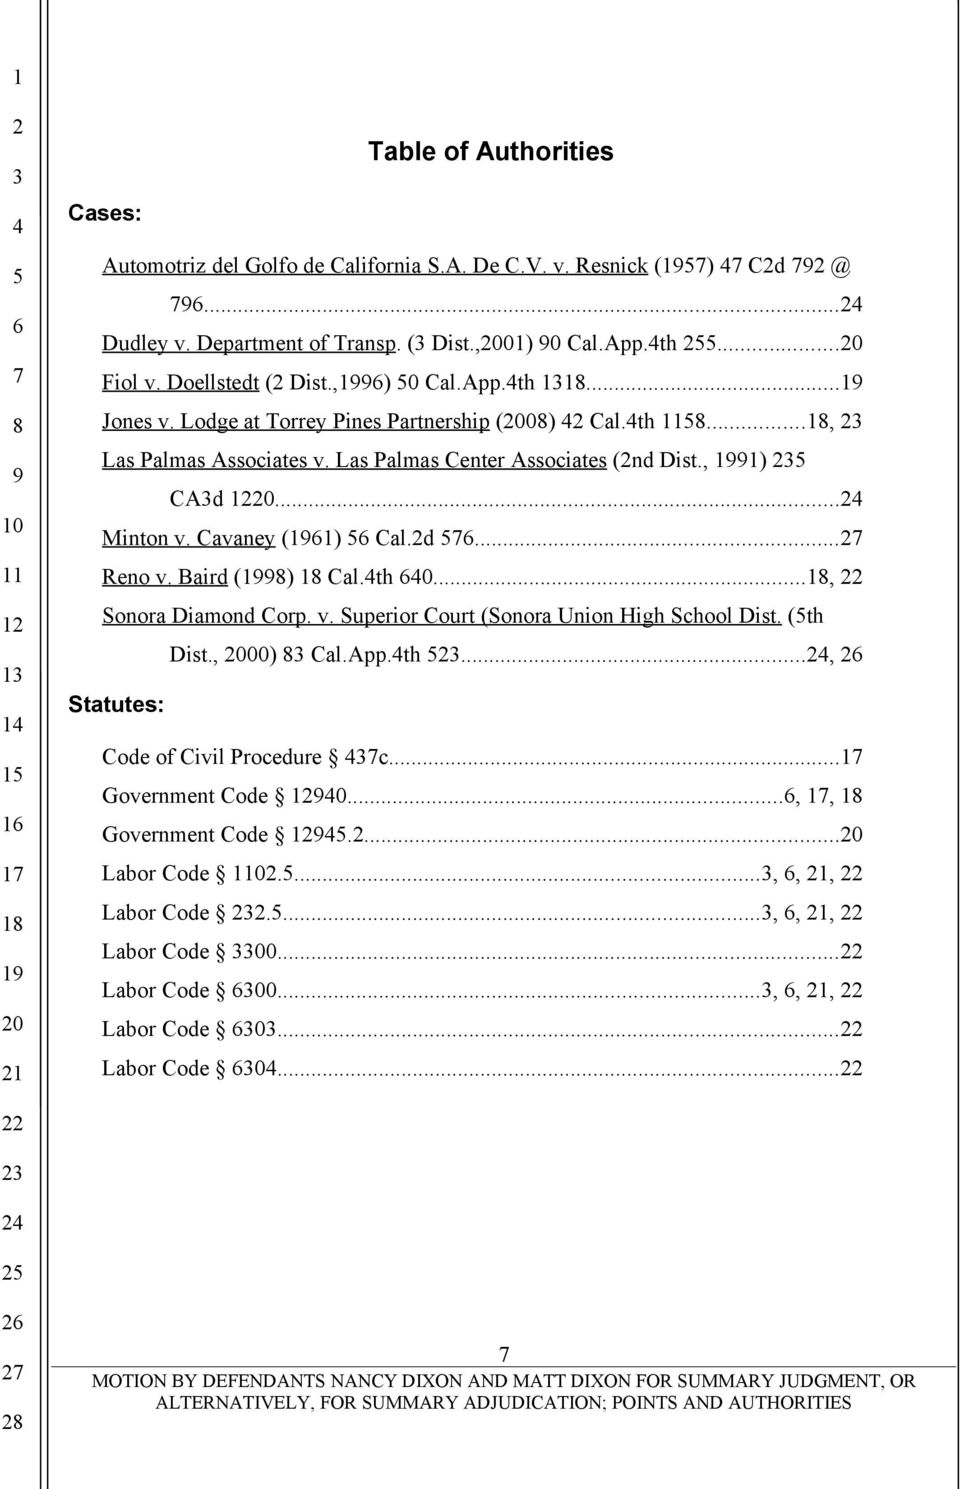 .. Minton v. Cavaney (1) Cal.d... Reno v. Baird () Cal.th 0..., Sonora Diamond Corp. v. Superior Court (Sonora Union High School Dist. (th Dist., 00) Cal.App.th..., Statutes: Code of Civil Procedure c.